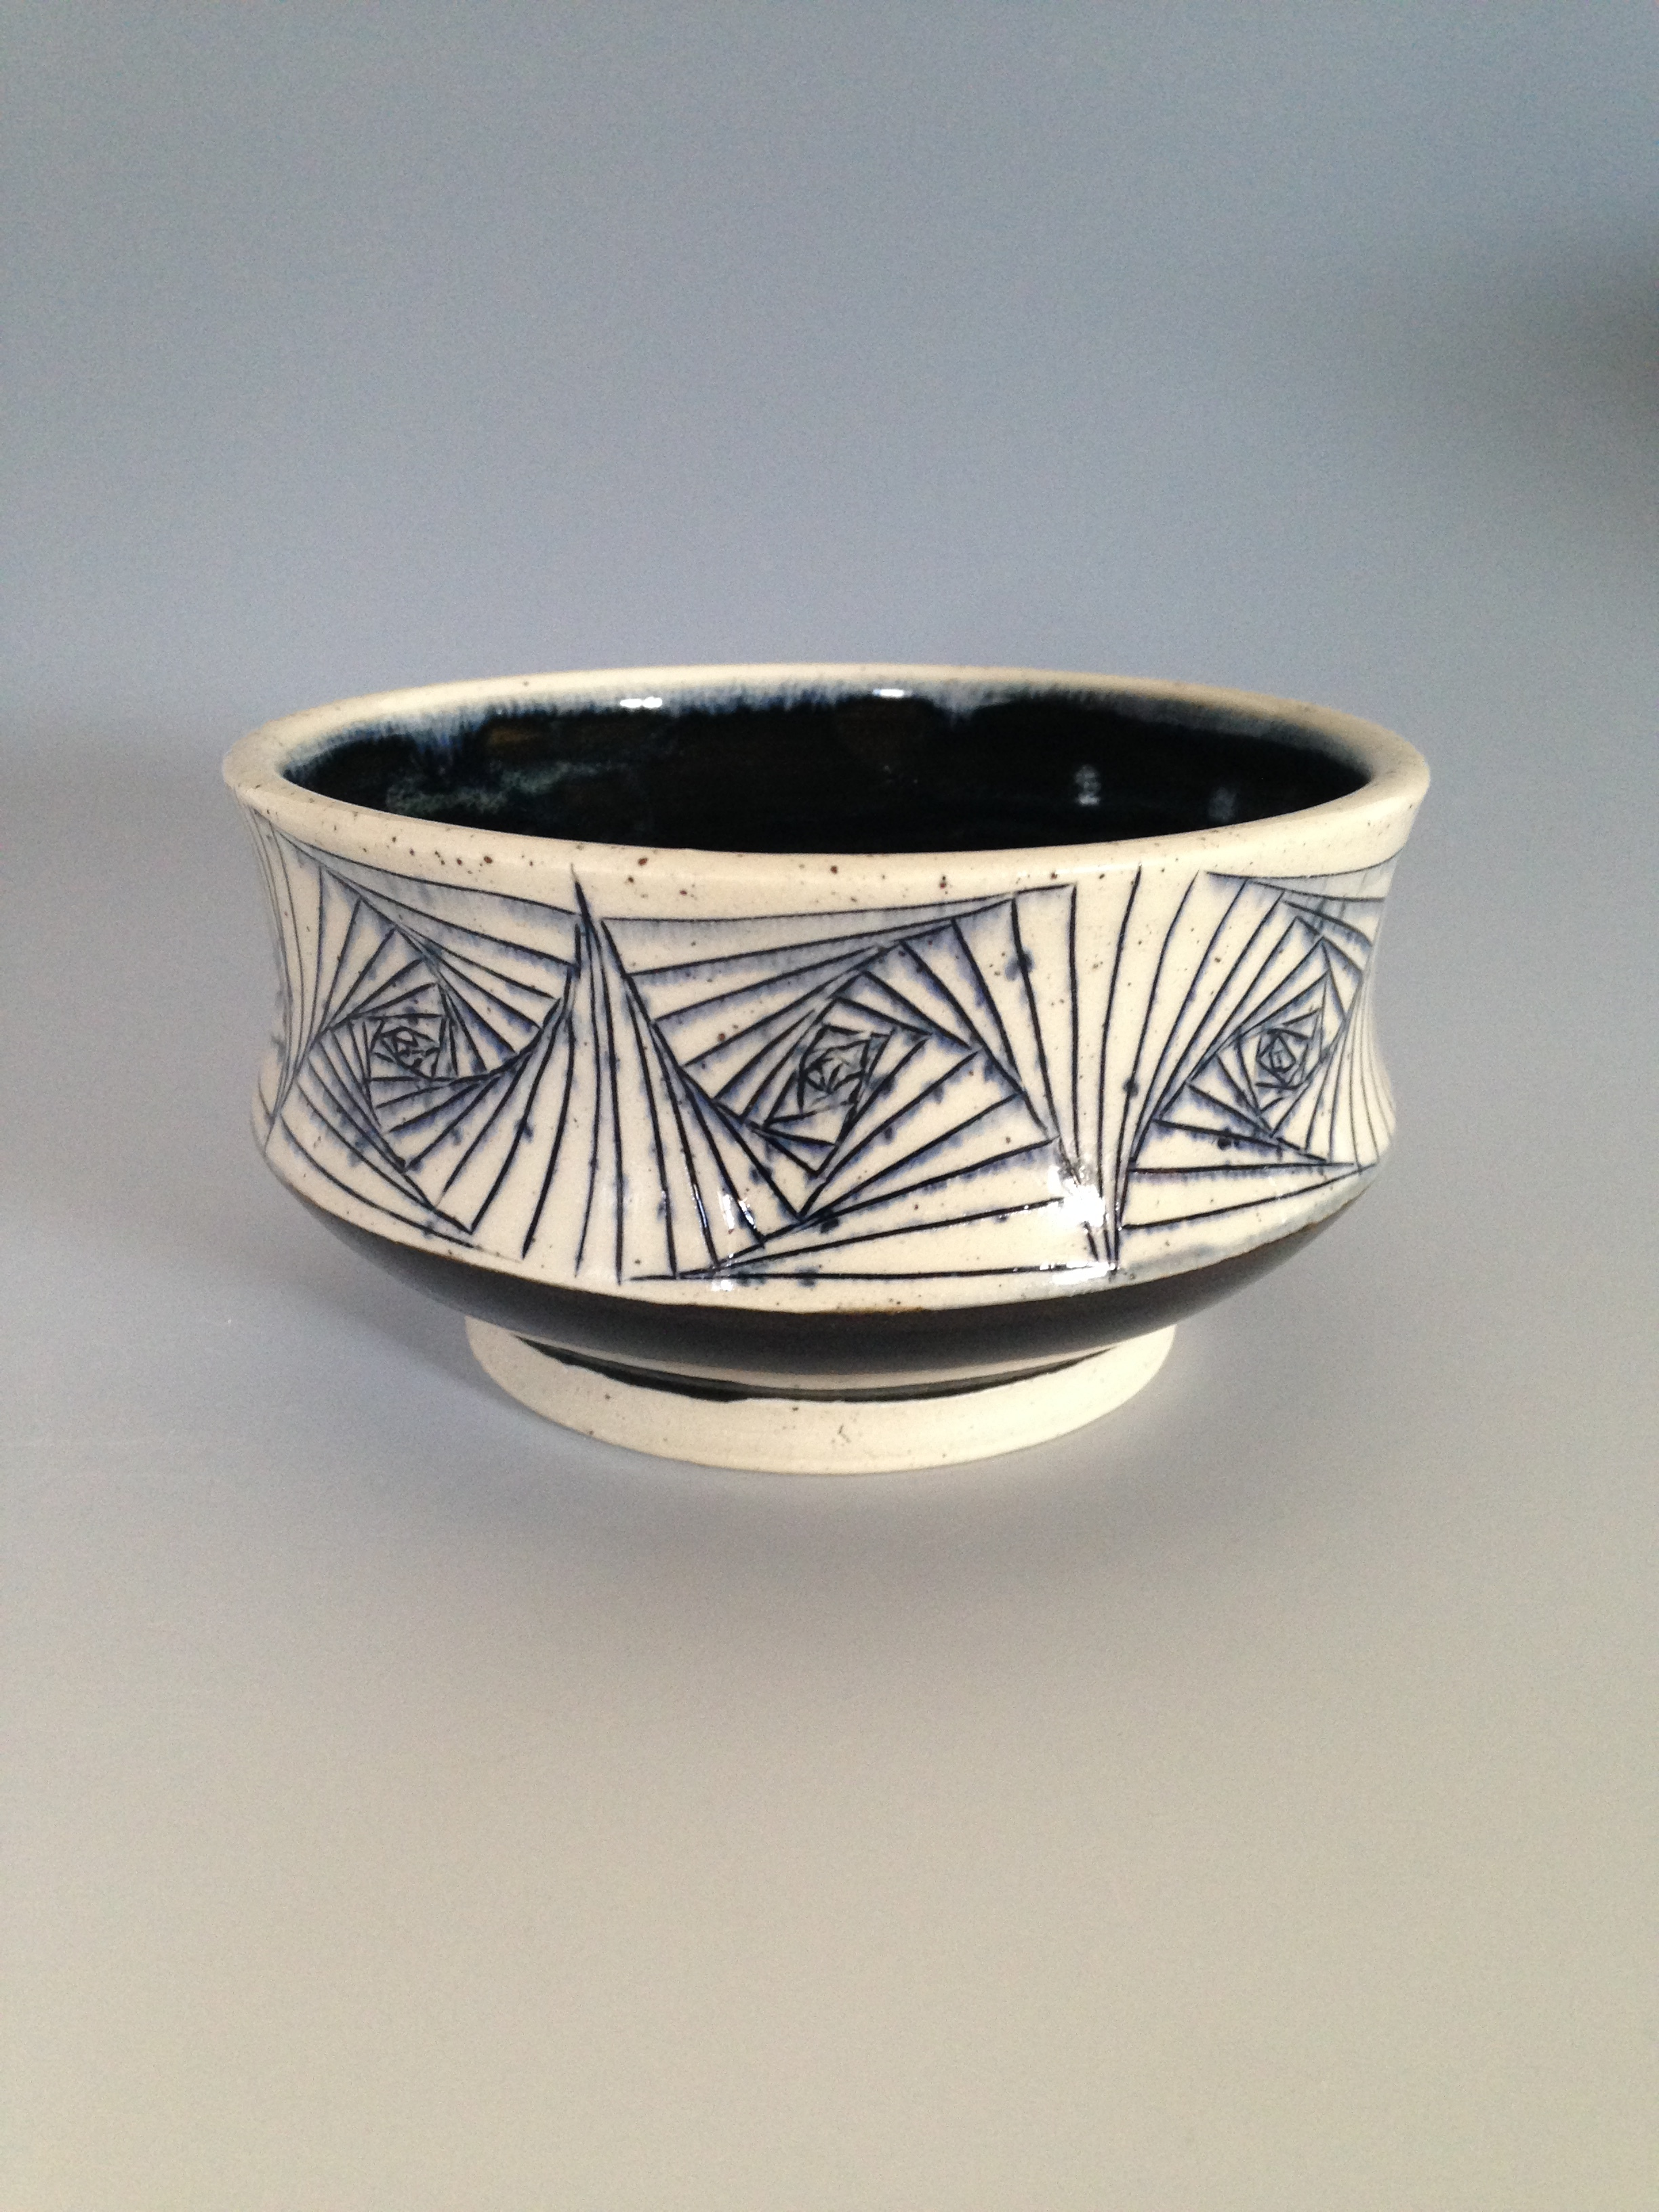 "Incised Spiral Bowl $28      Diameter-4.75"" Height 2.5"""